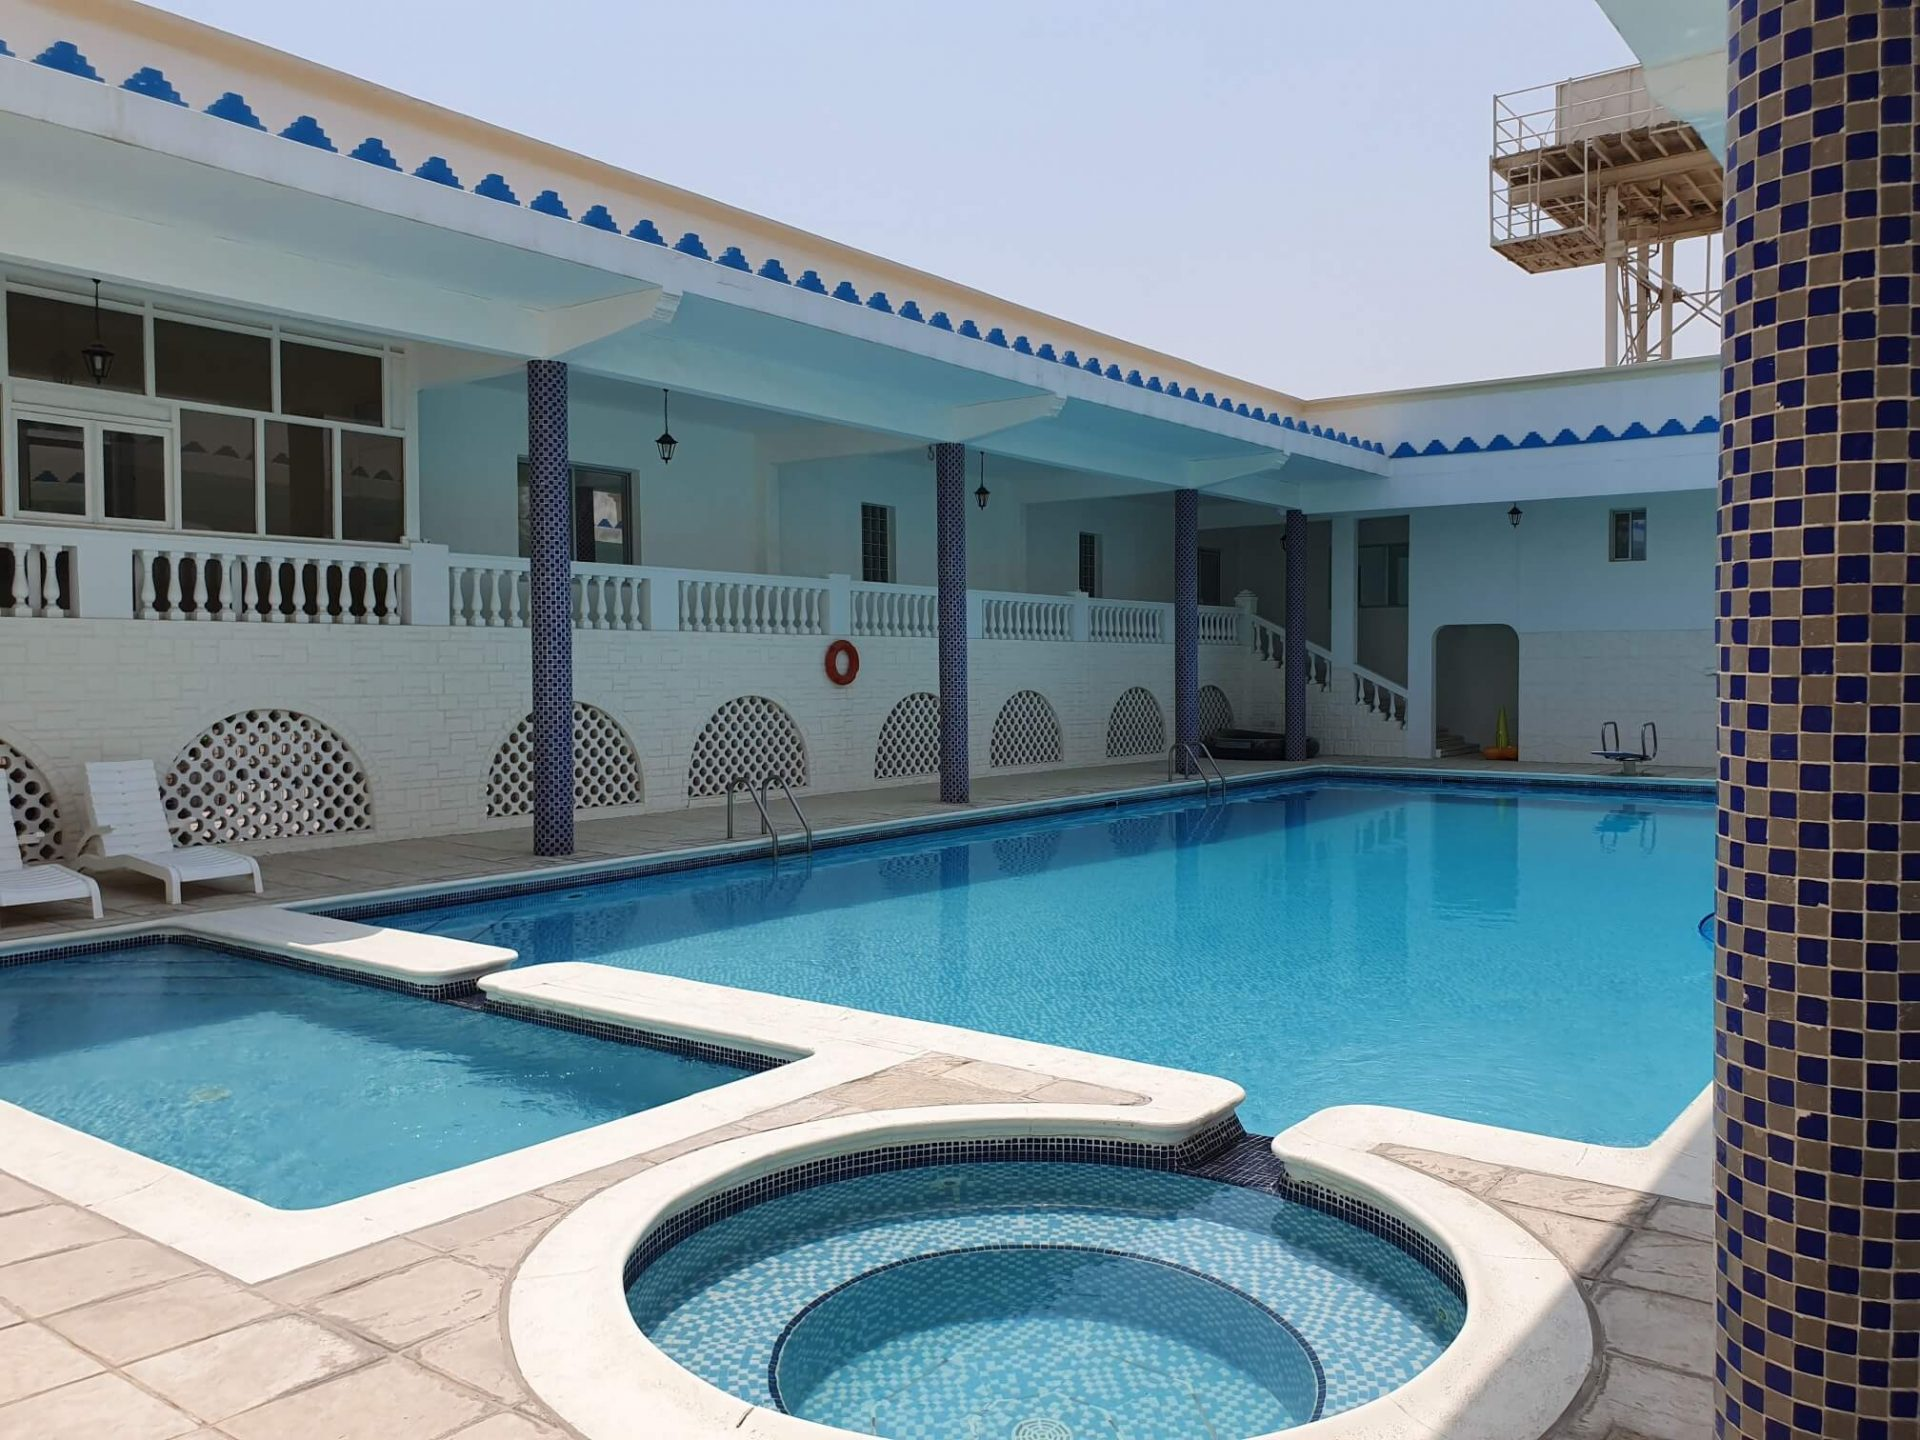 Swimming Pool At Misan Gardens in Saar, Bahrain